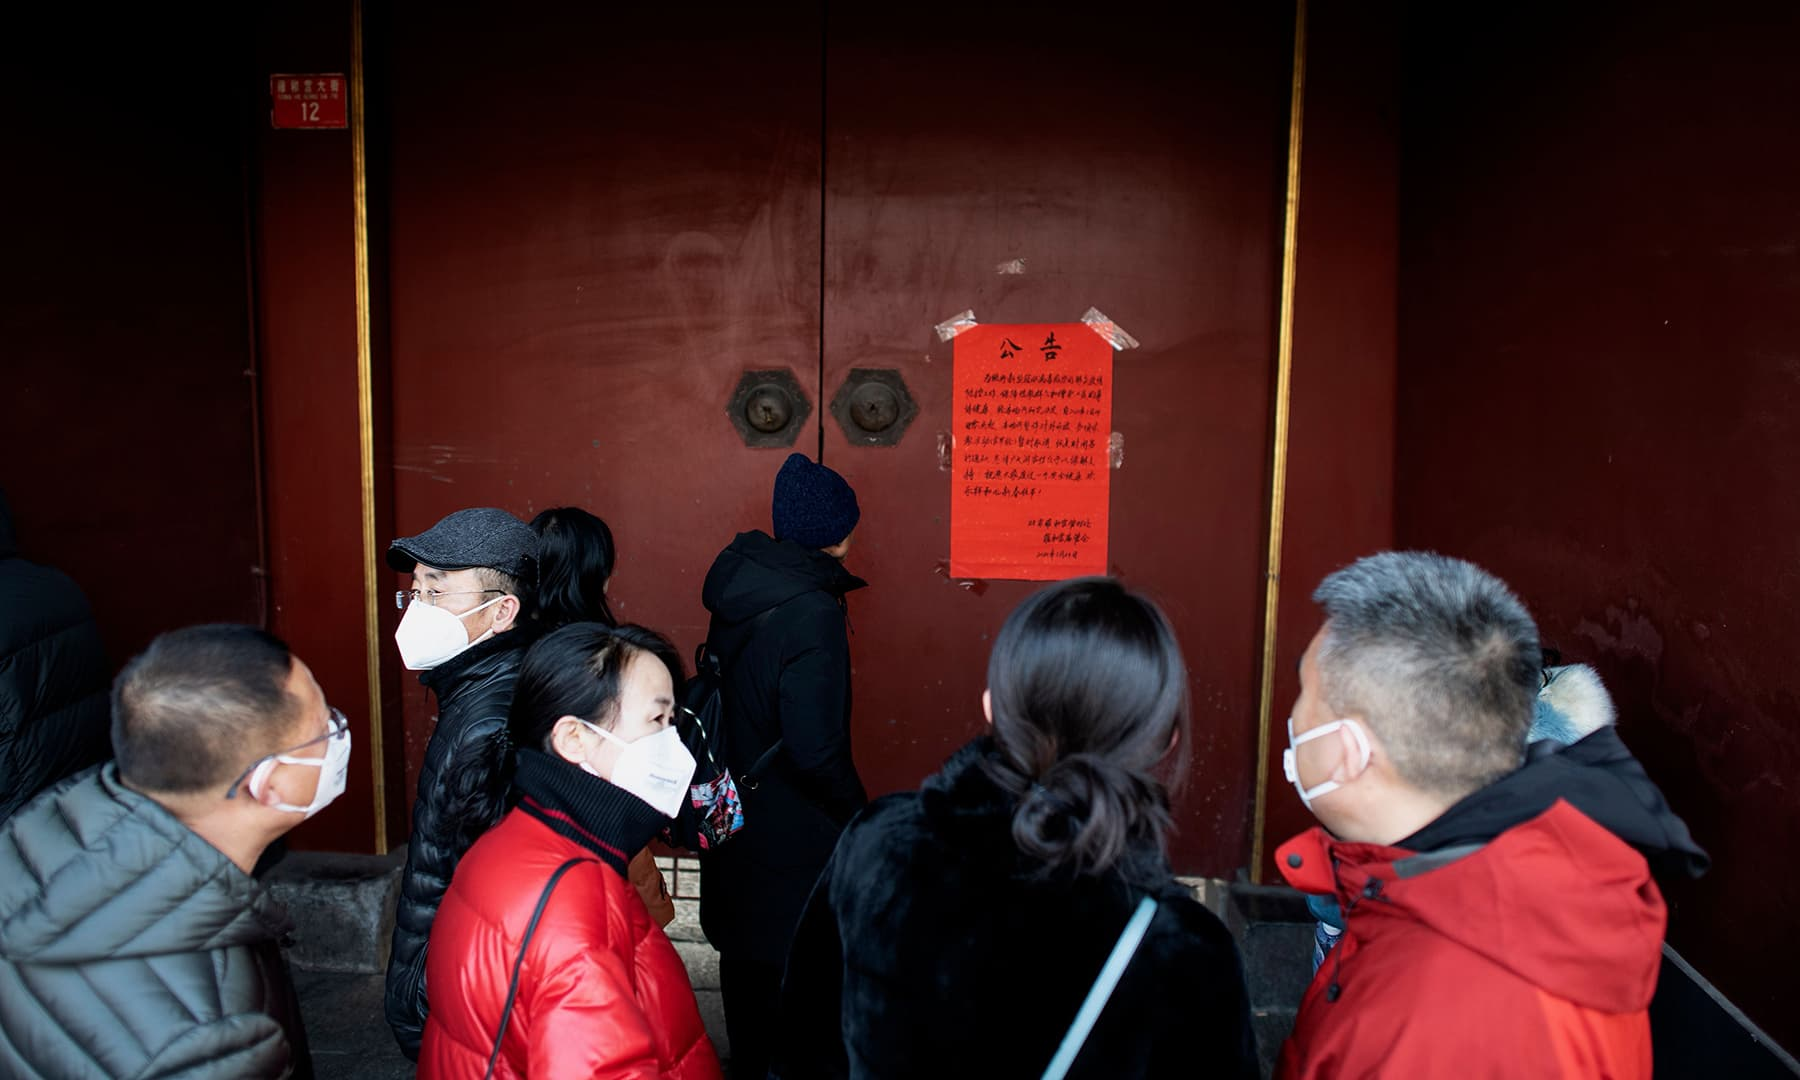 People wearing protective facemasks to help stop the spread of a deadly SARS-like virus which originated in the central city of Wuhan, stand in front of the closed gate of the Lama Temple in Beijing on January 25, 2020. — AFP